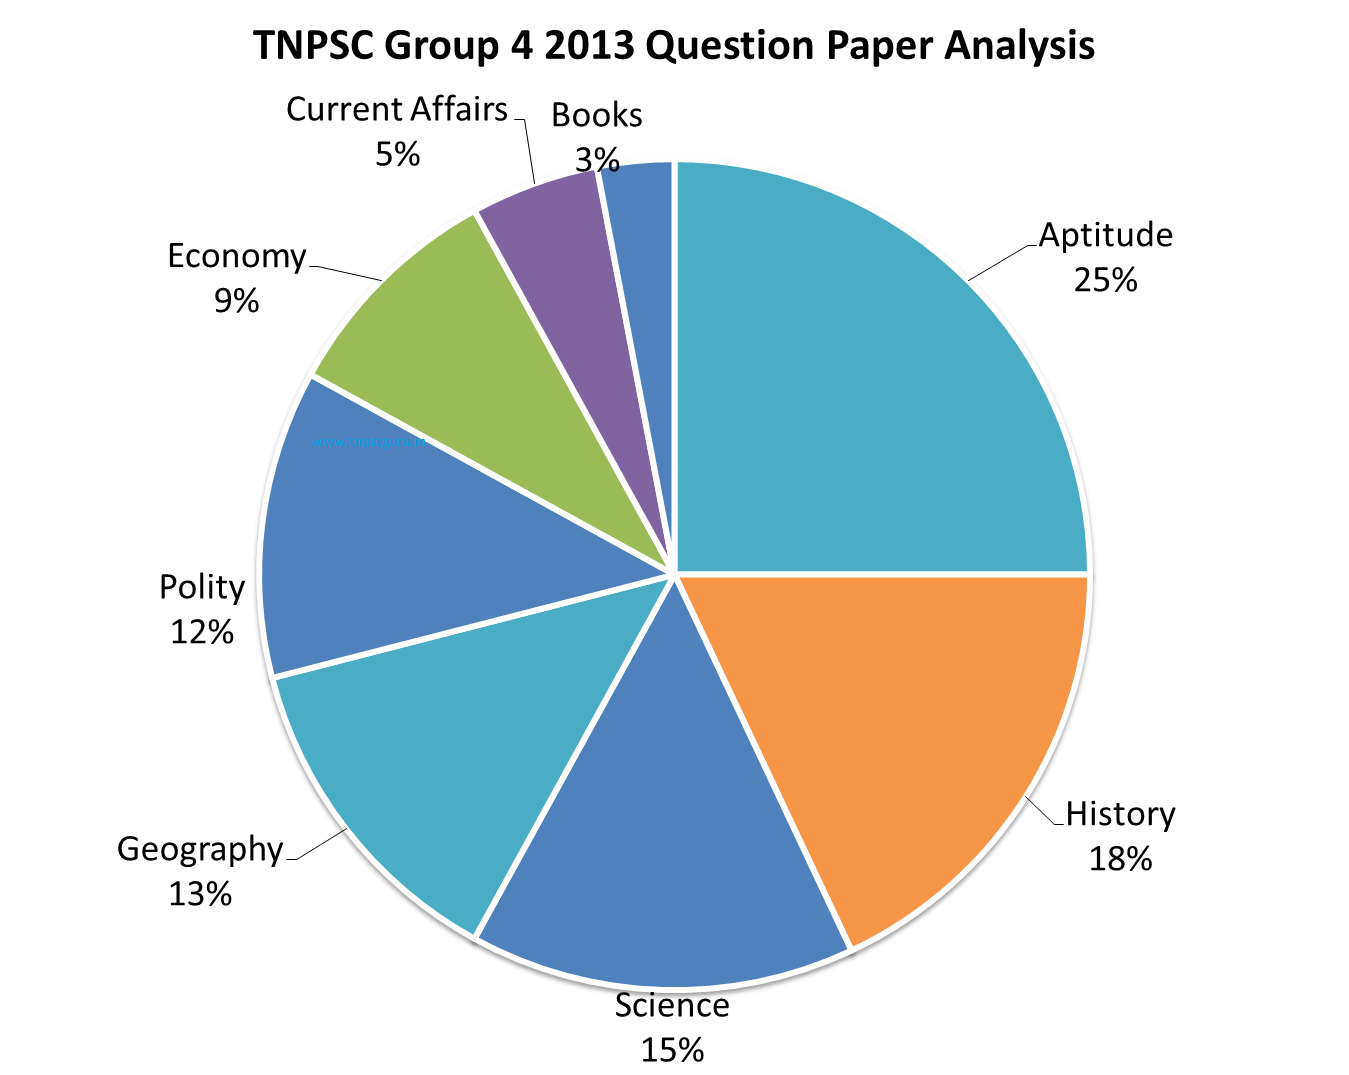 Check here the Previous Year TNPSC Group 4 Exam Question paper Analysis